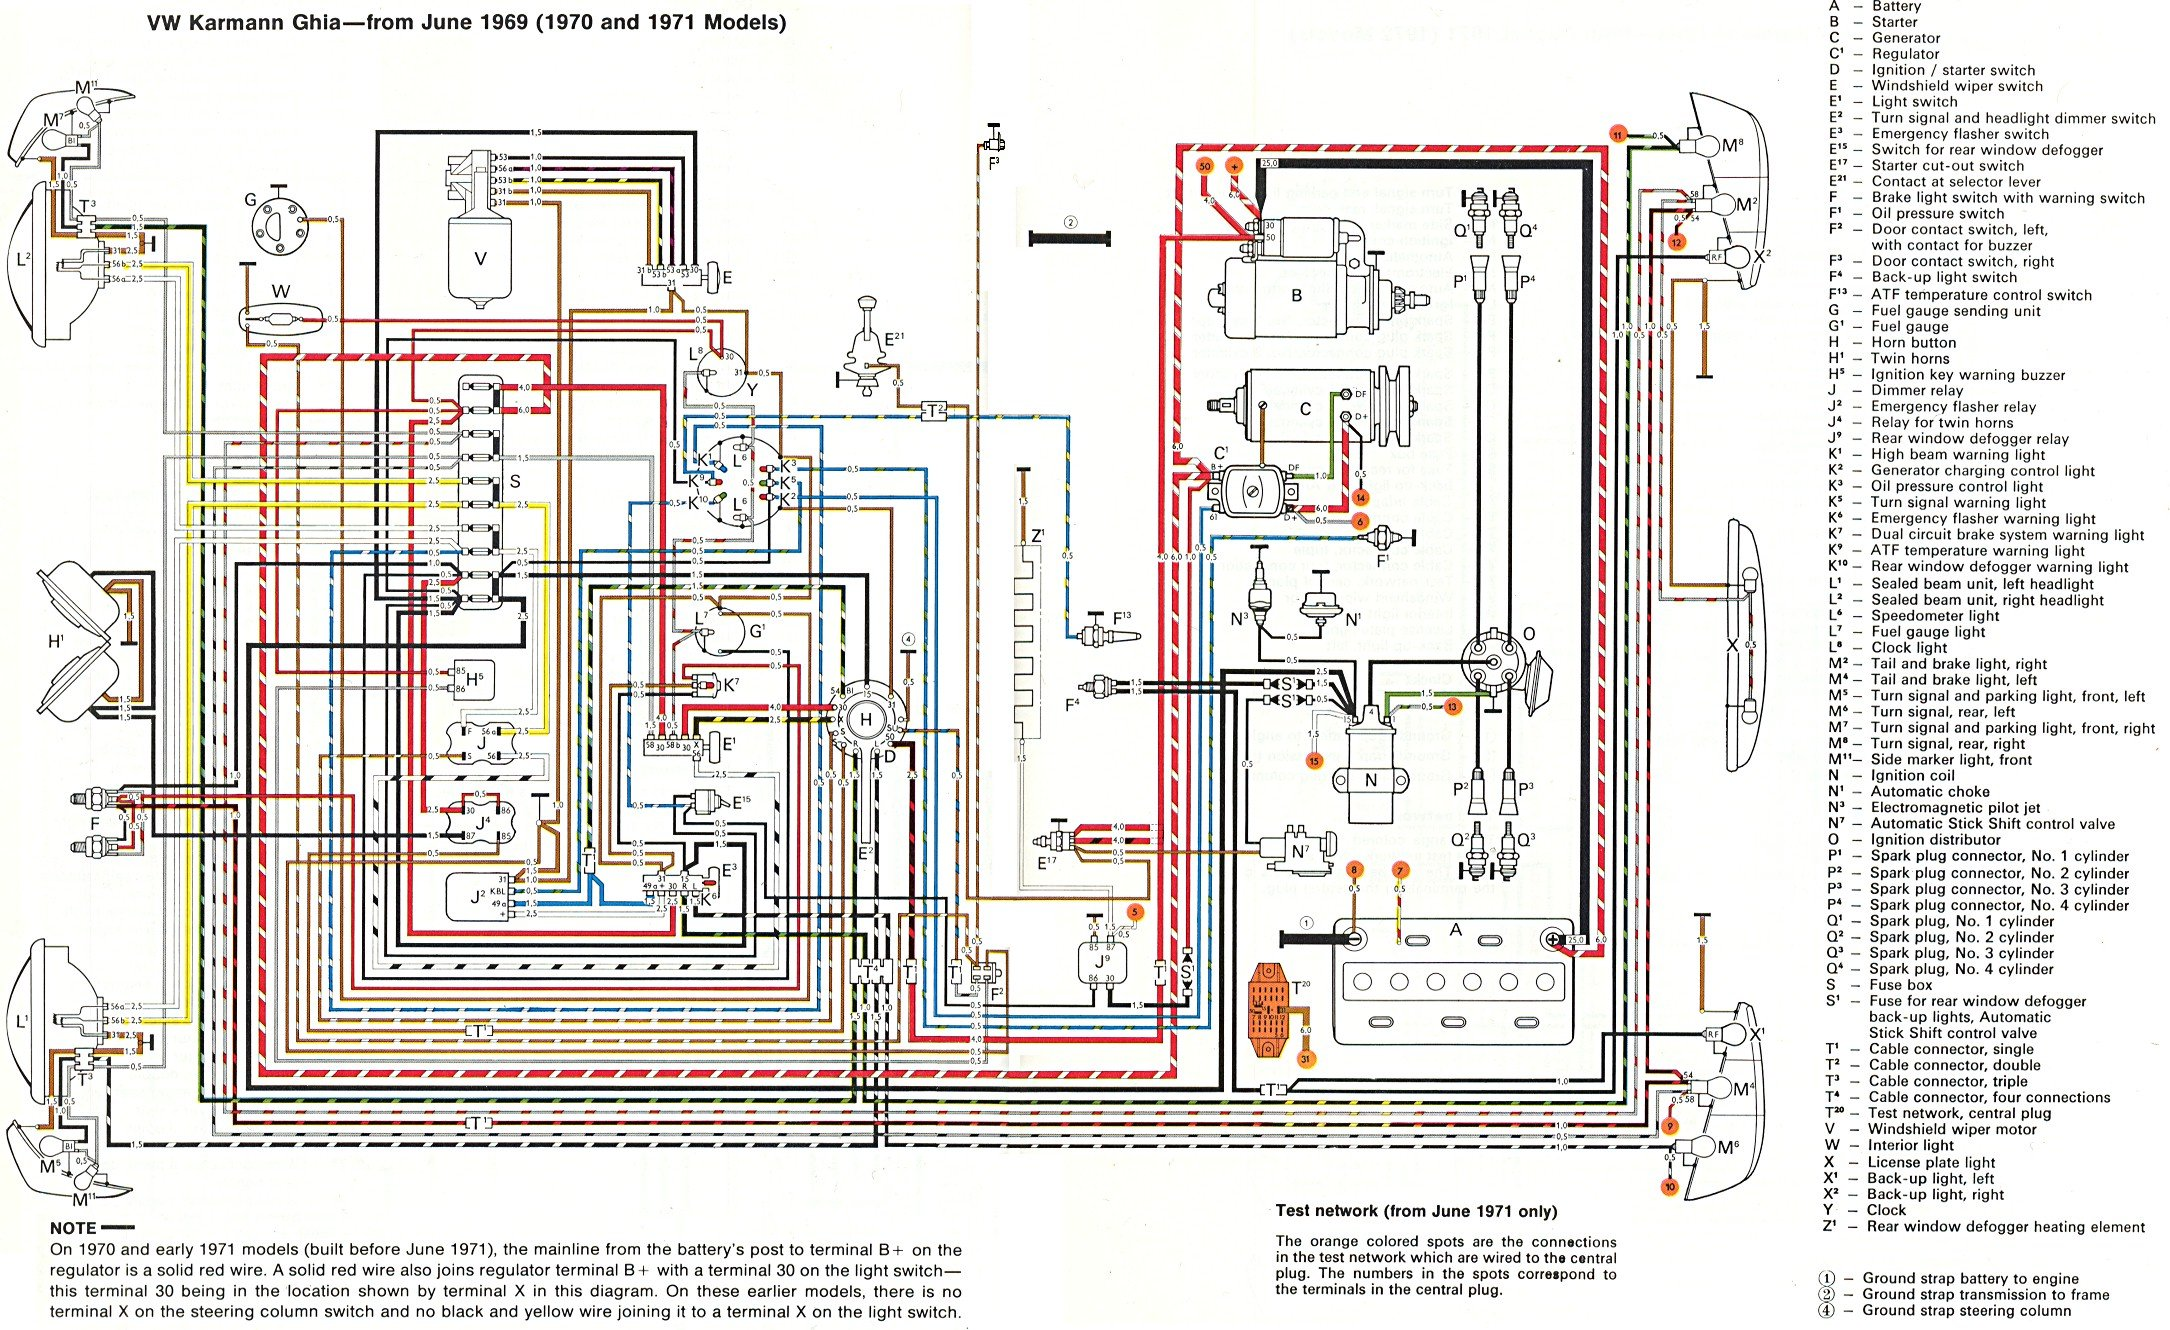 69 Pontiac Starter Wiring Diagram Free Picture Diagrams 1967 Chevelle Thesamba Com Karmann Ghia Rh 1980 Grand